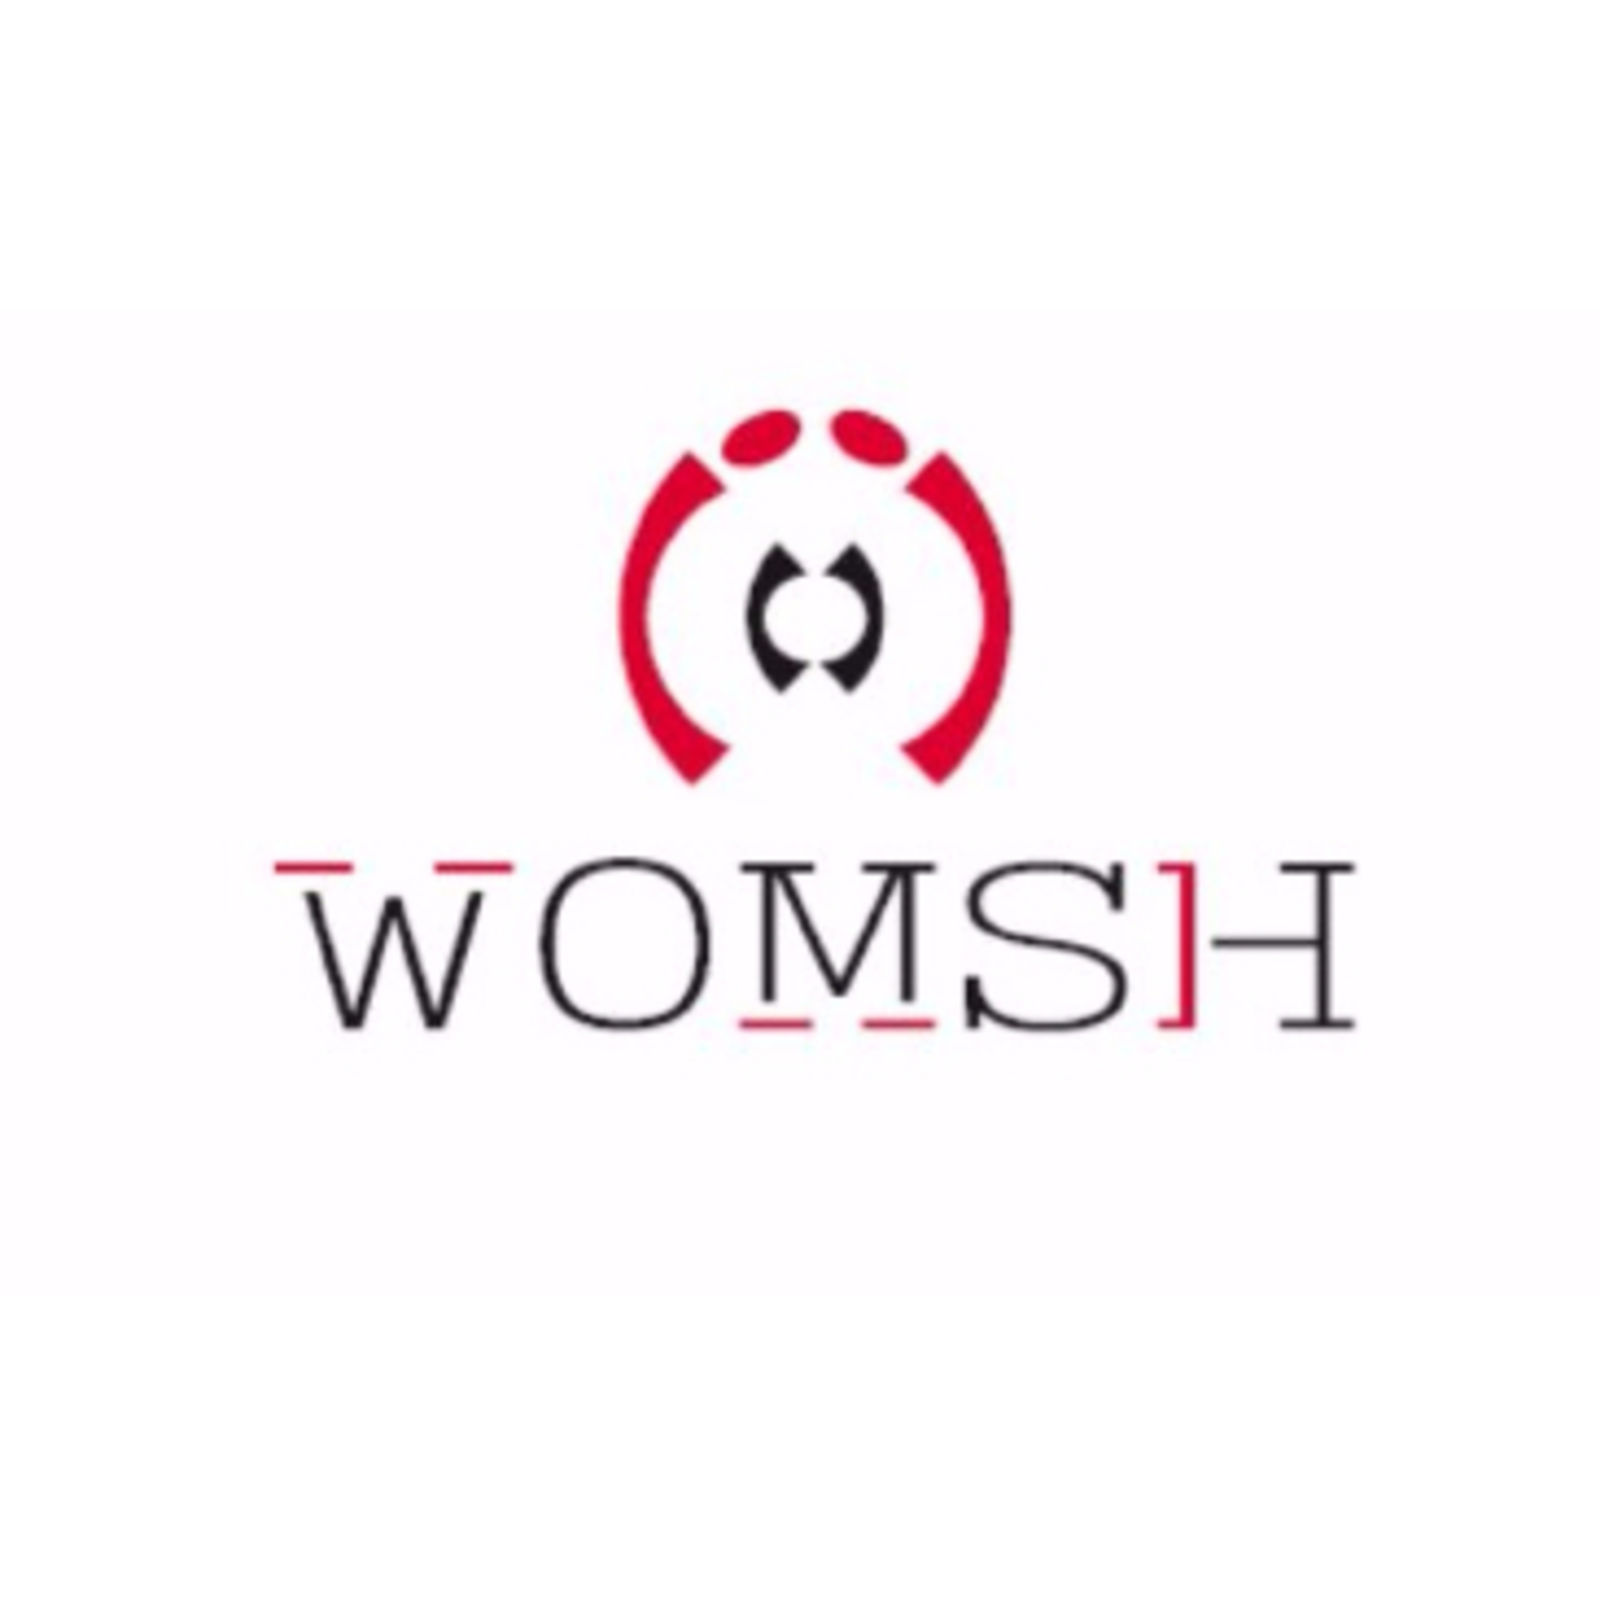 WOMSH (Image 1)